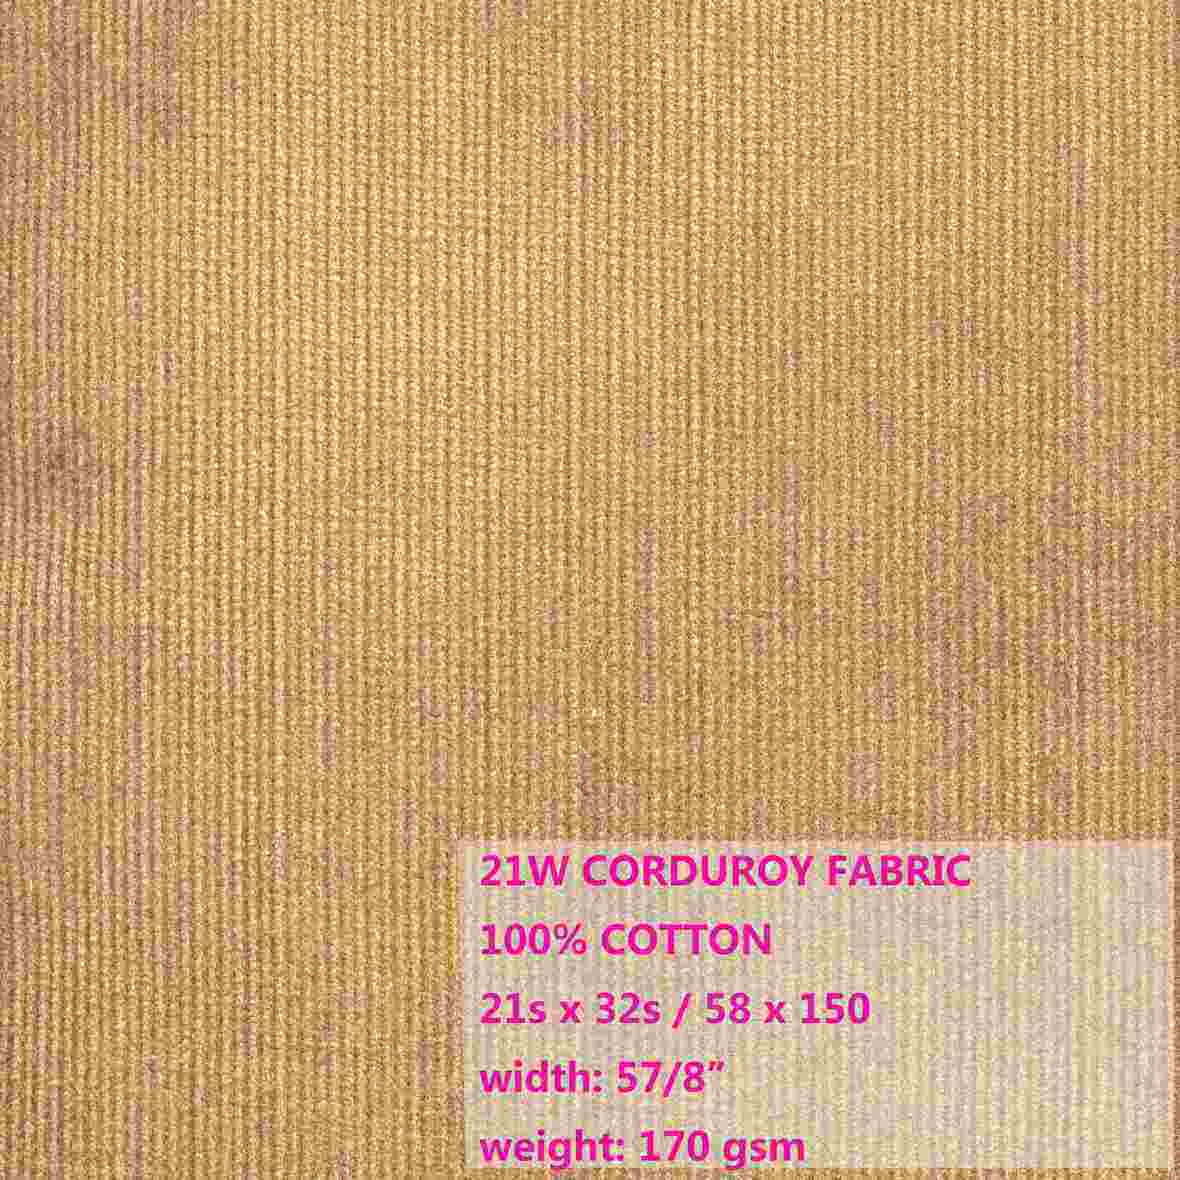 China 100 cotton 21w corduroy fabric esdc10011 china for Corduroy fabric